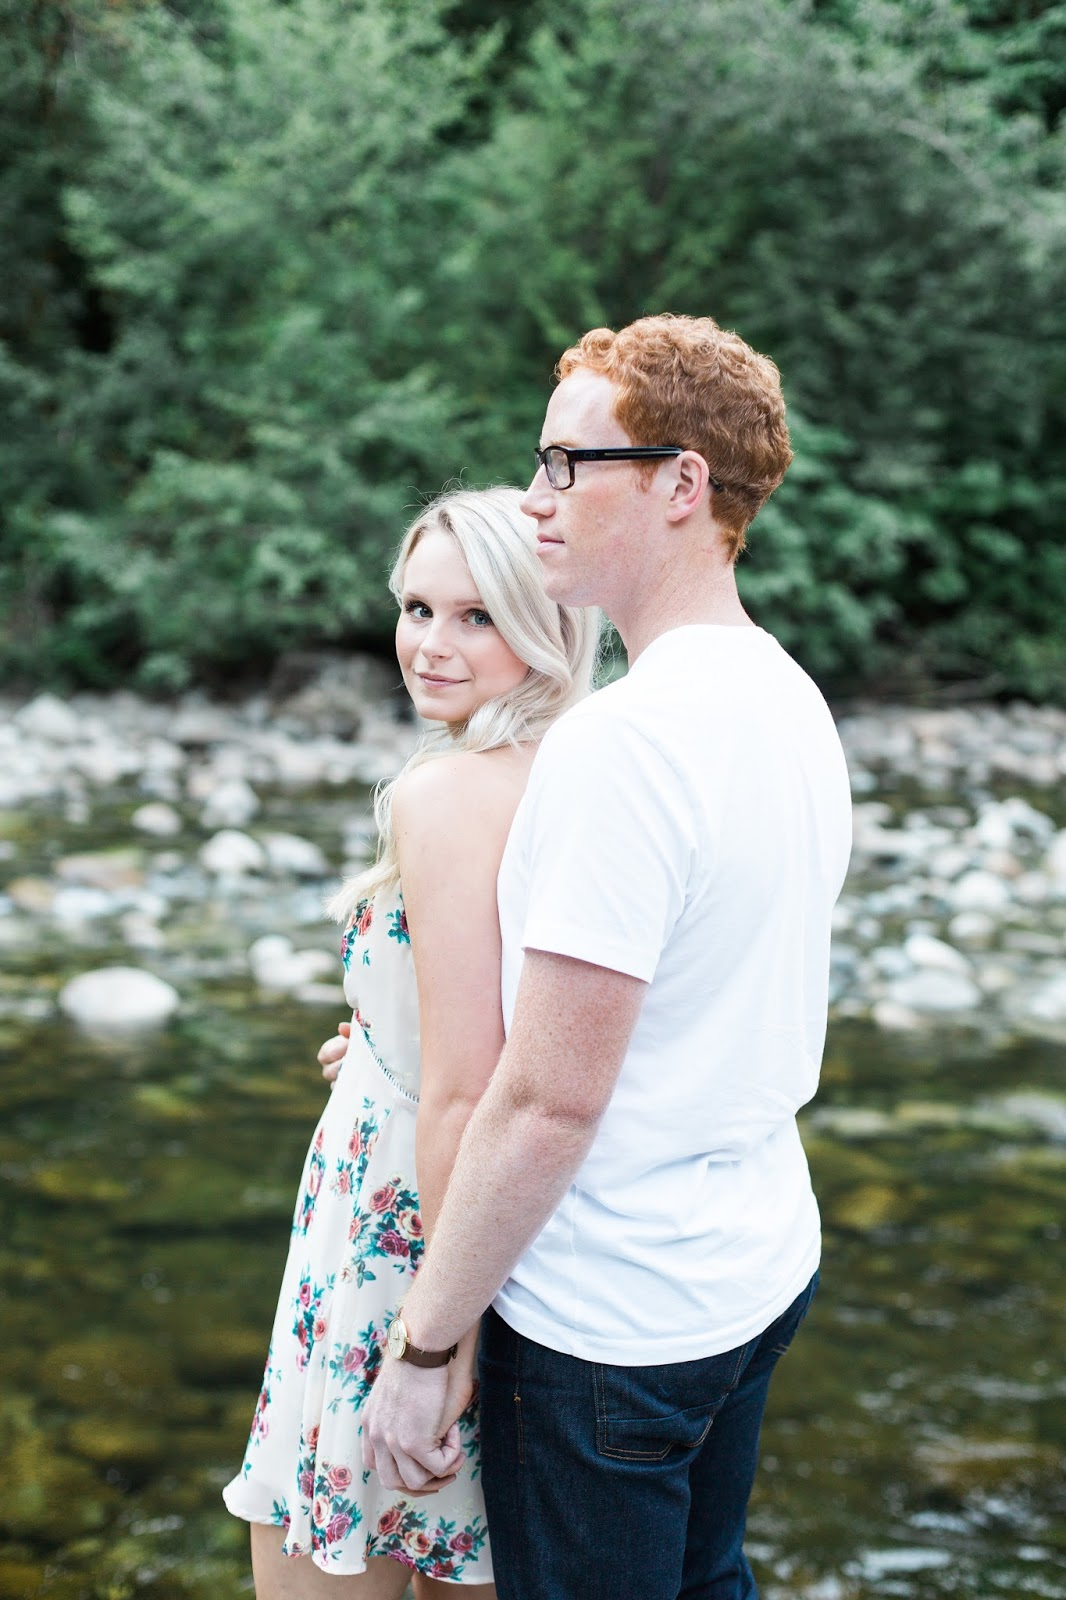 a blonde women looks back at the camera, water in the background, new fiance in the foreground, how to pose for engagement photos